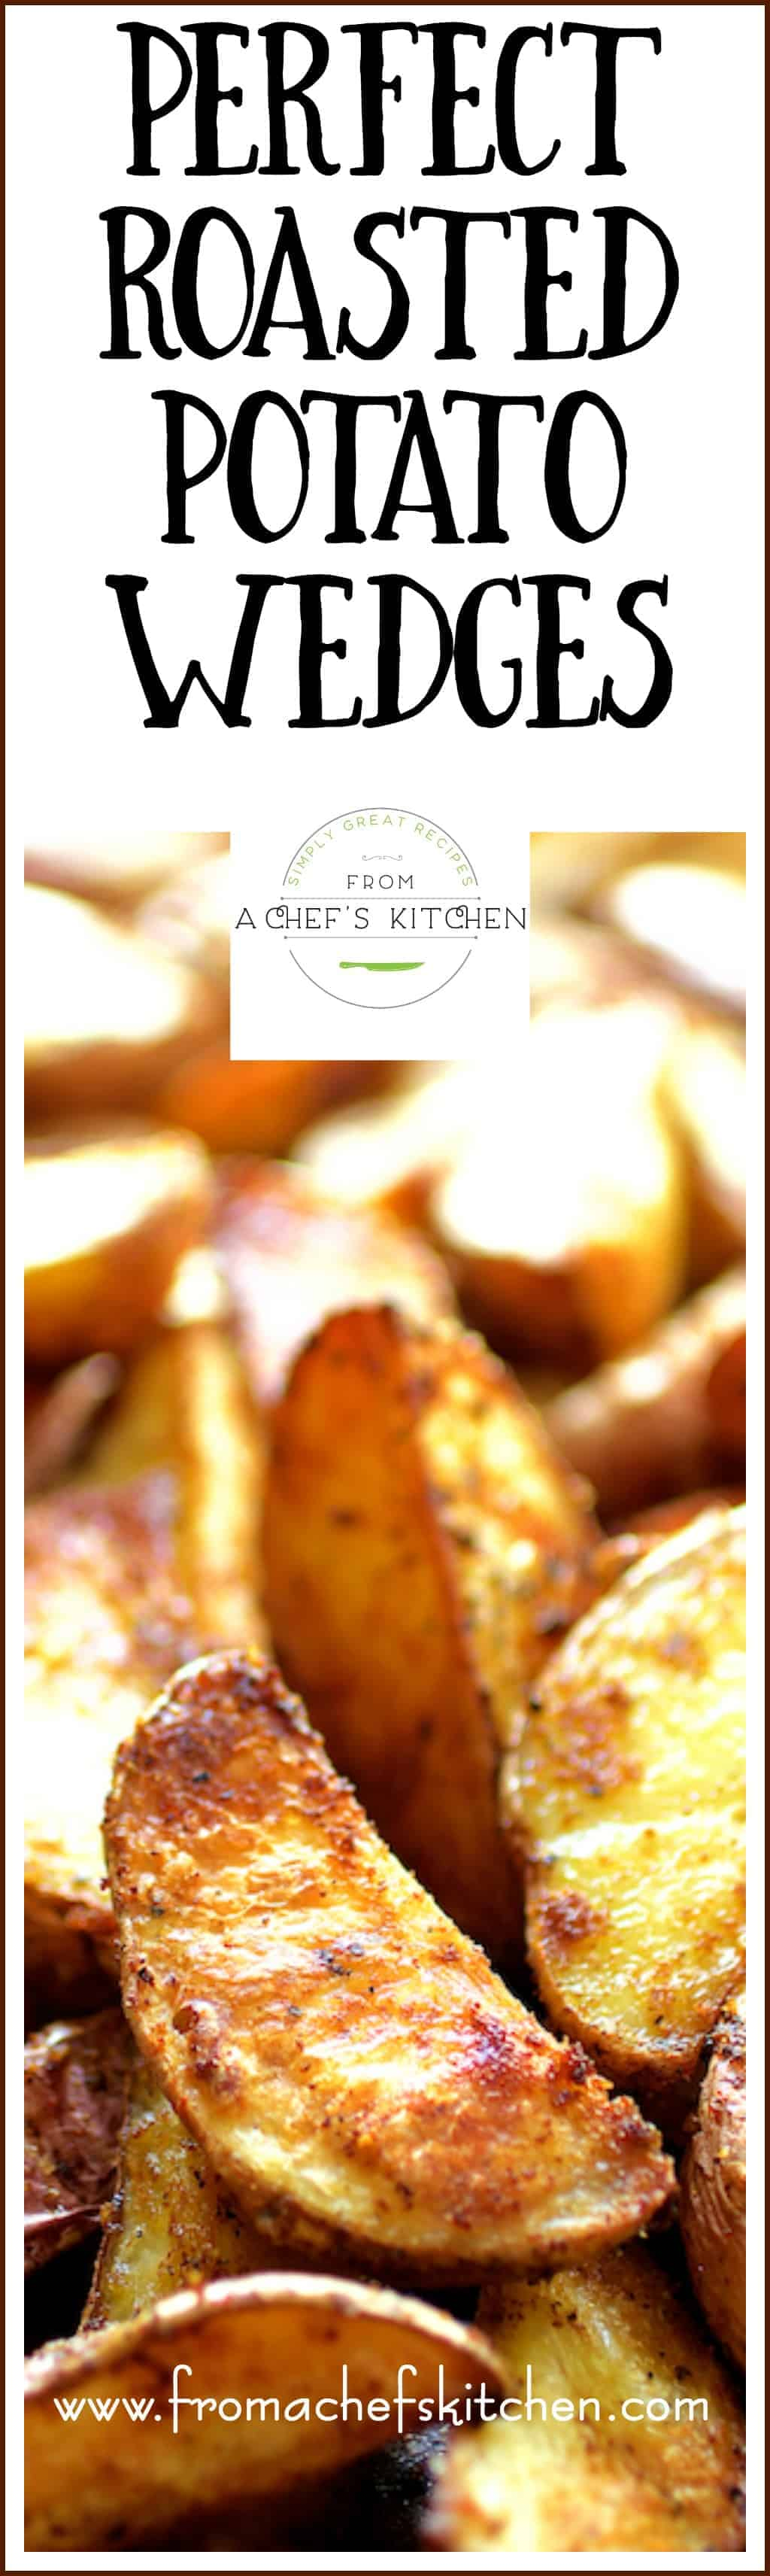 Potatoes are always the perfect side dish!  Perfect Roasted Potato Wedges are easy and can be seasoned any way you like.